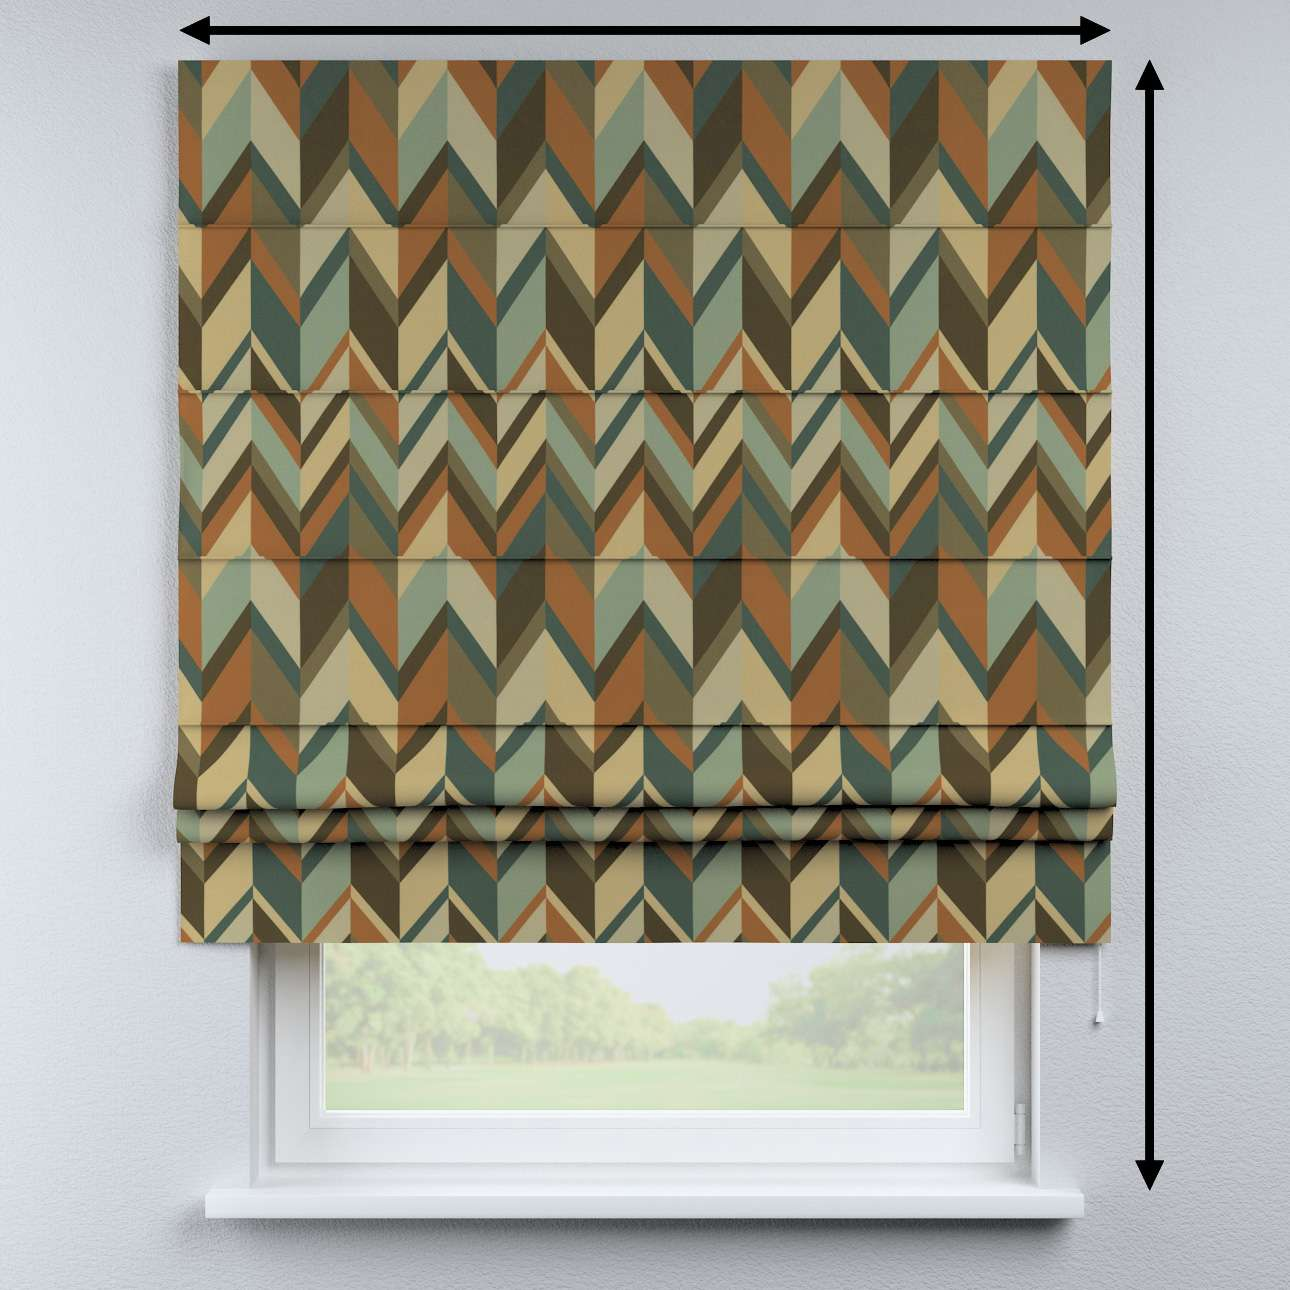 Padva roman blind in collection Vintage 70's, fabric: 143-55